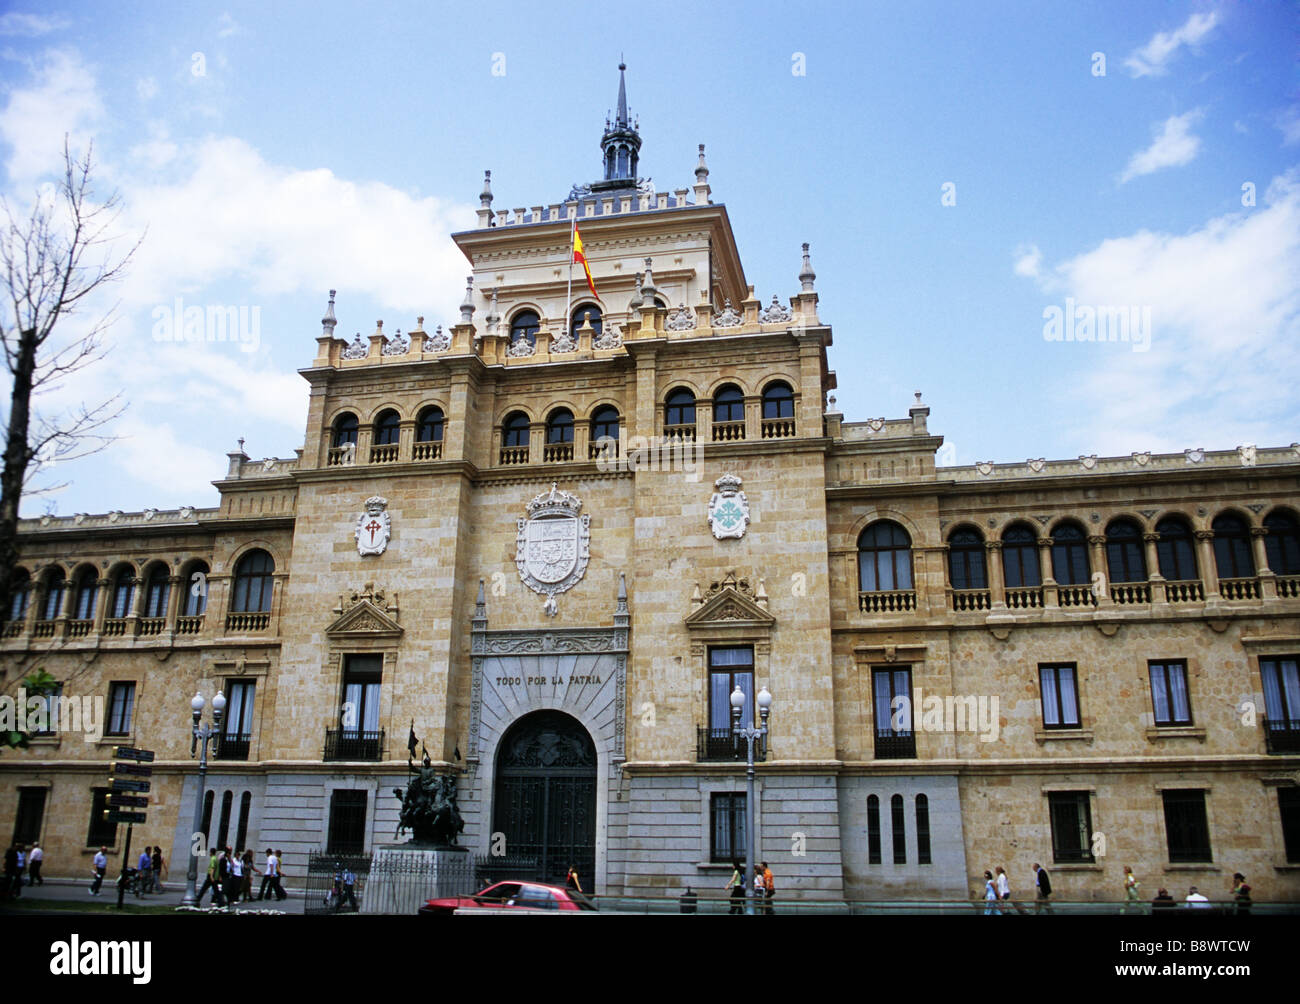 The Academia de Caballeria or Calvary Academy is a popular landmark on the Plaza Zorrilla in Valladolid Spain - Stock Image